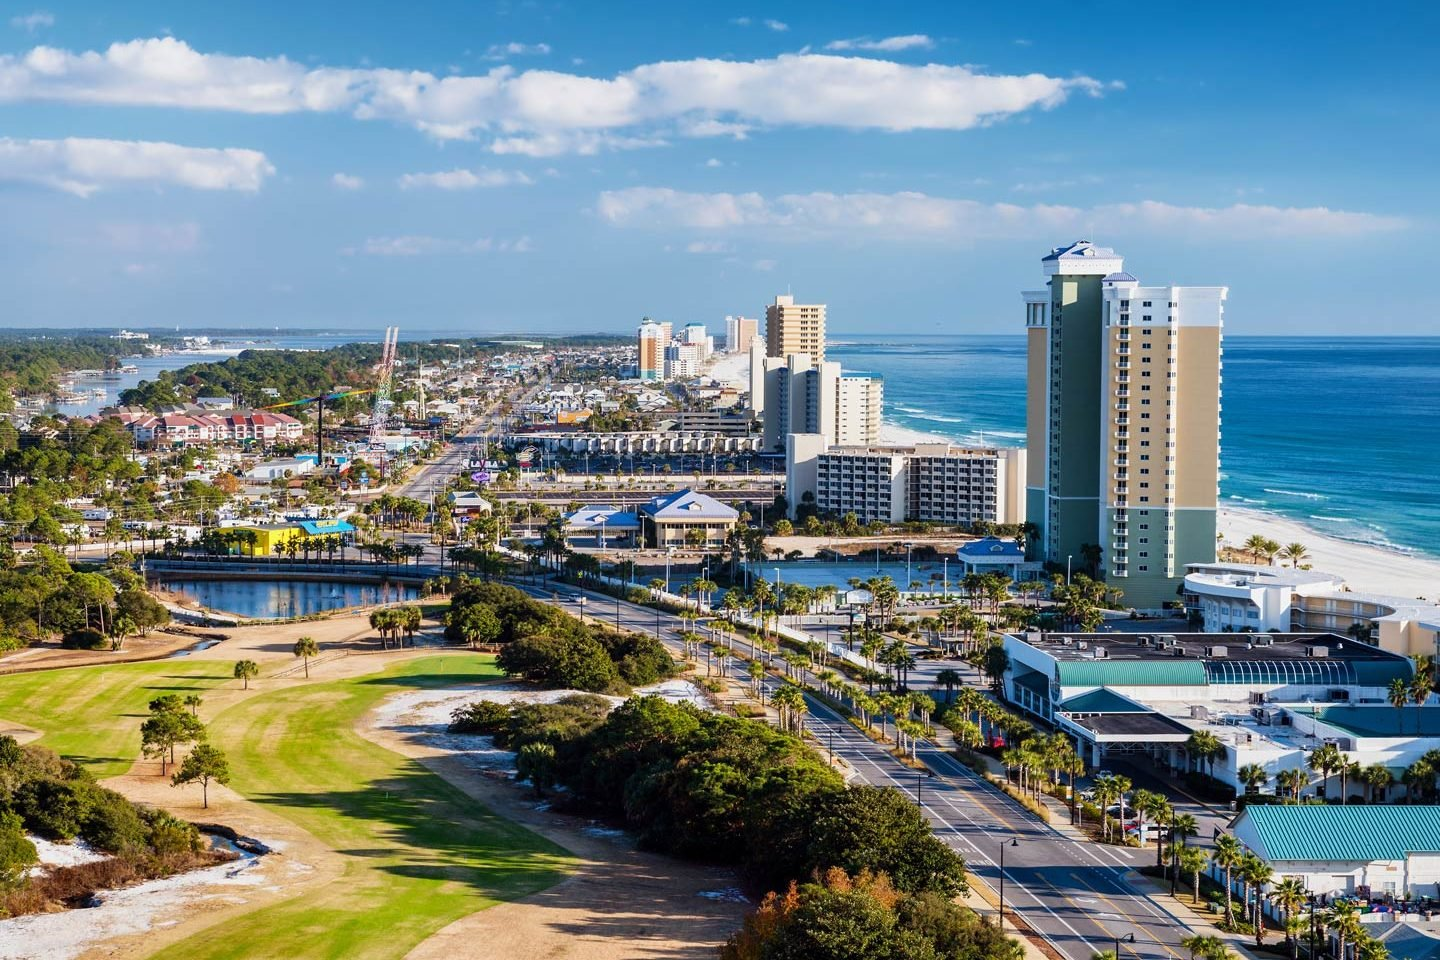 An aerial view of Panama City Beach